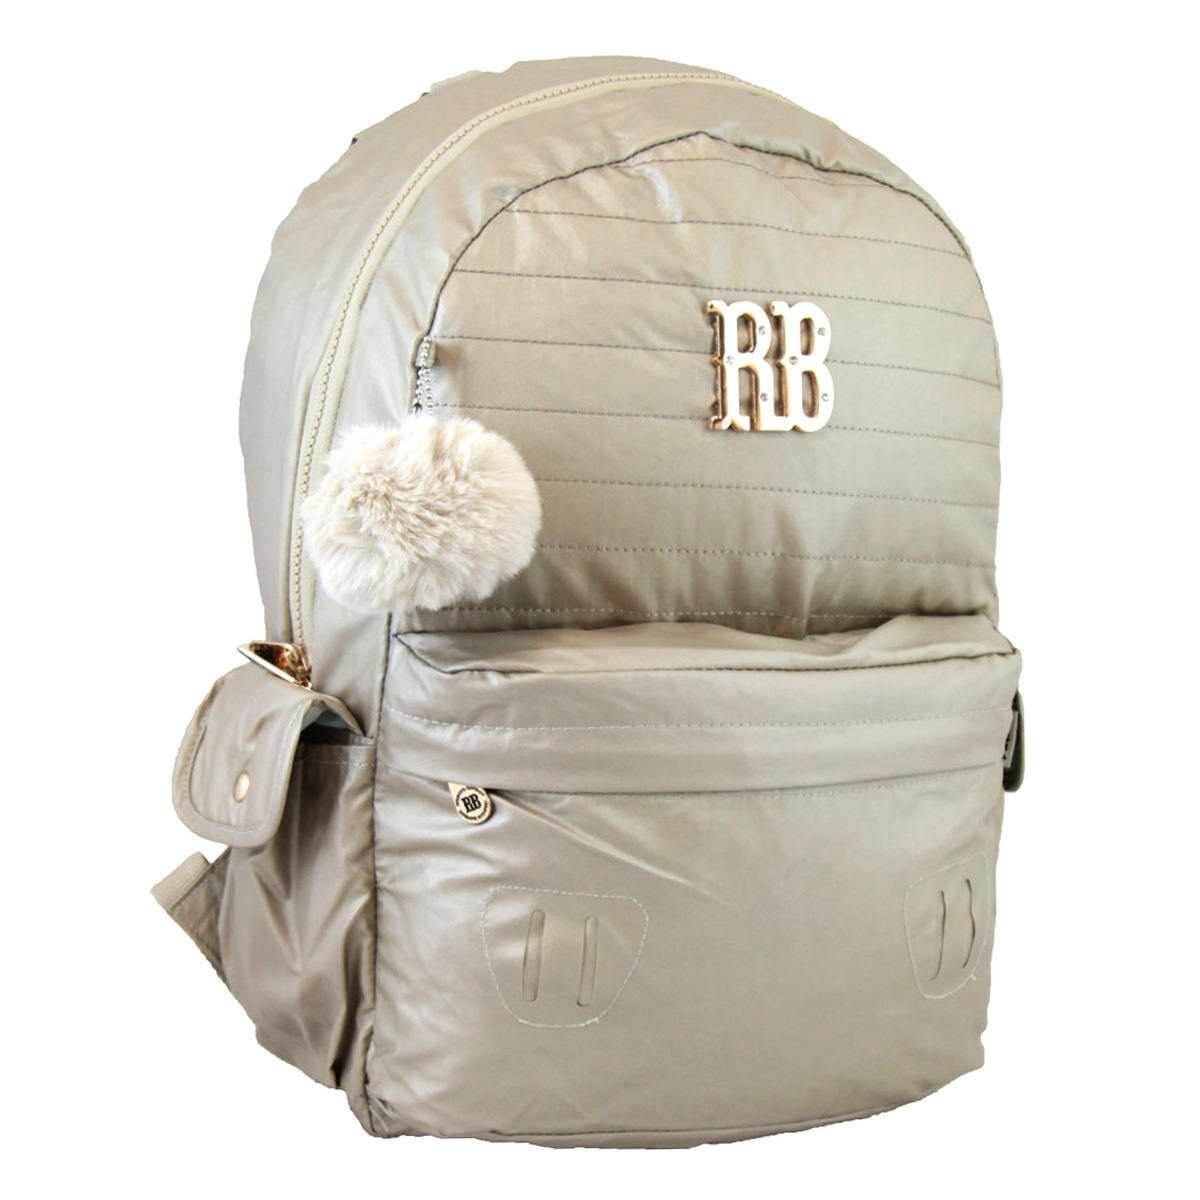 446b9be53 mochila rebecca bonbon notebook 15 metalizada escolar b9269. Carregando  zoom.